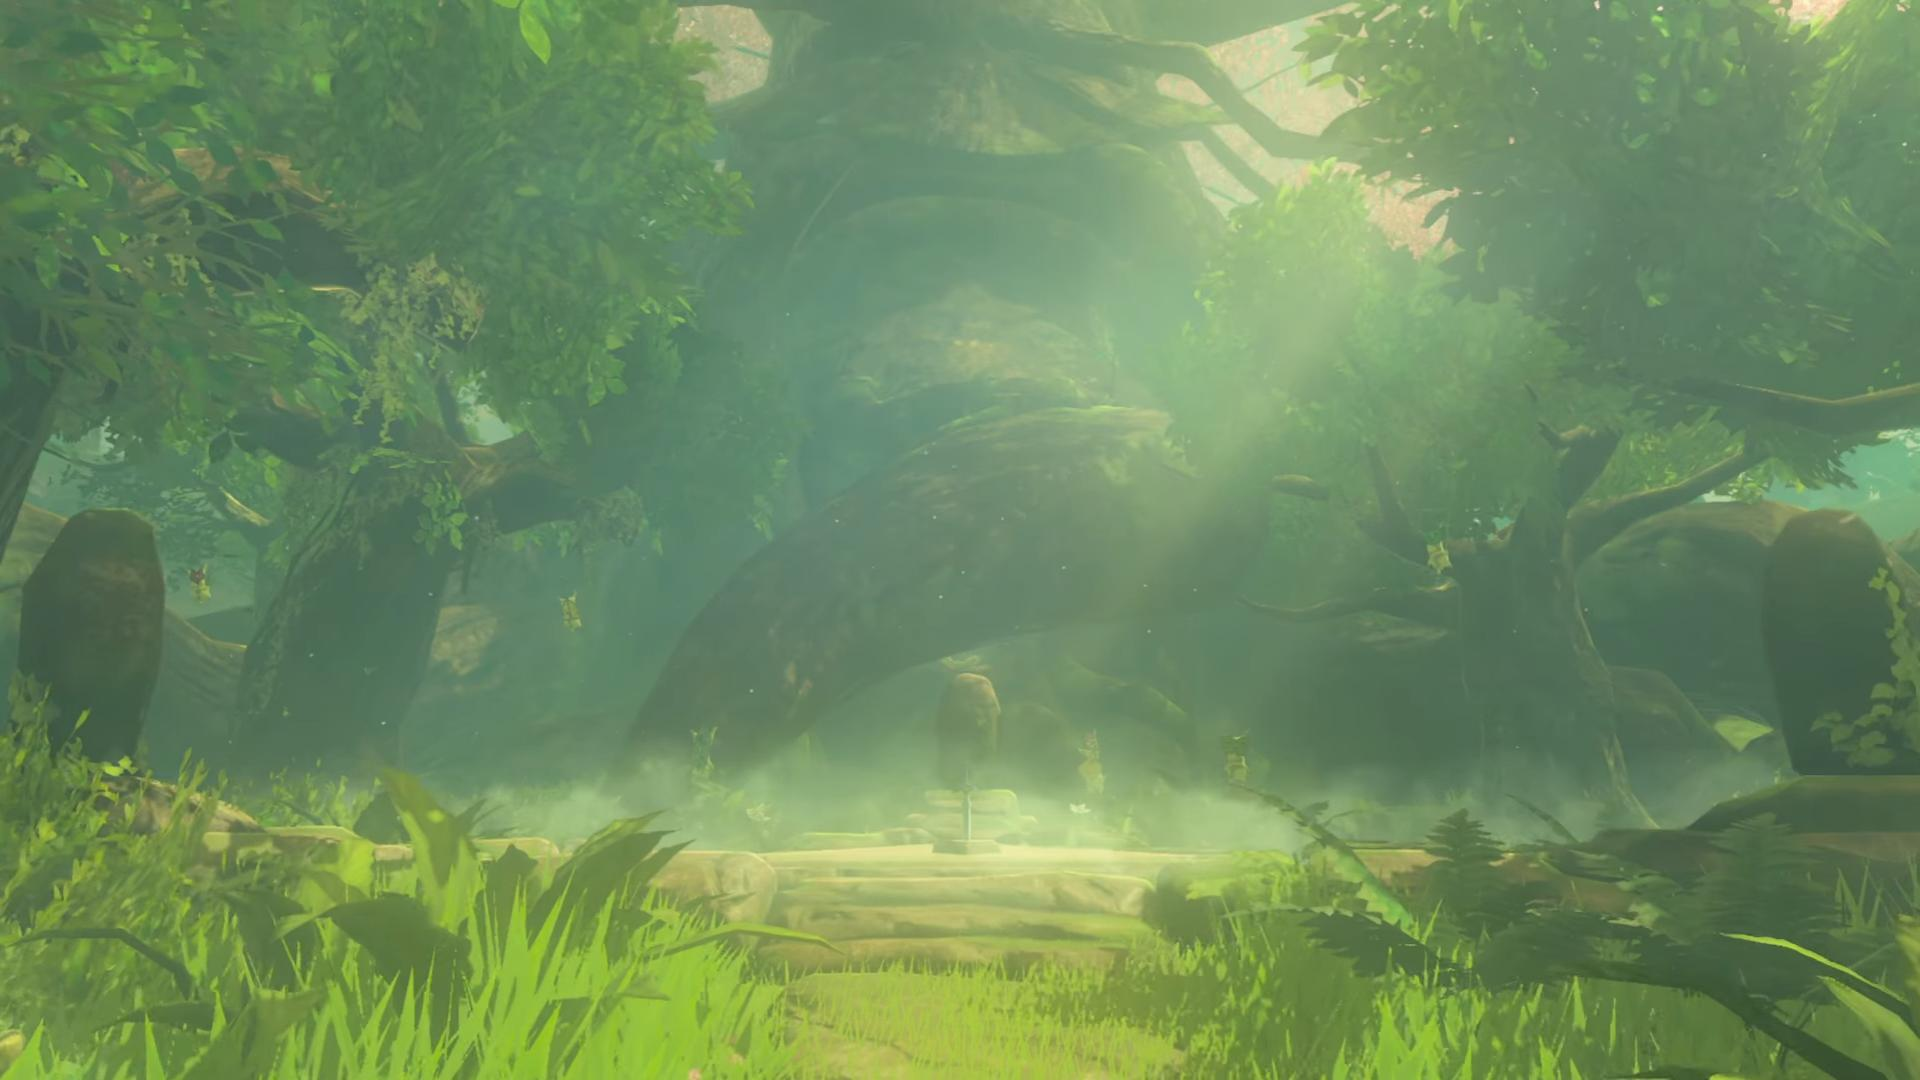 Zelda: Breath of the Wild Looks Much Better Without Fog